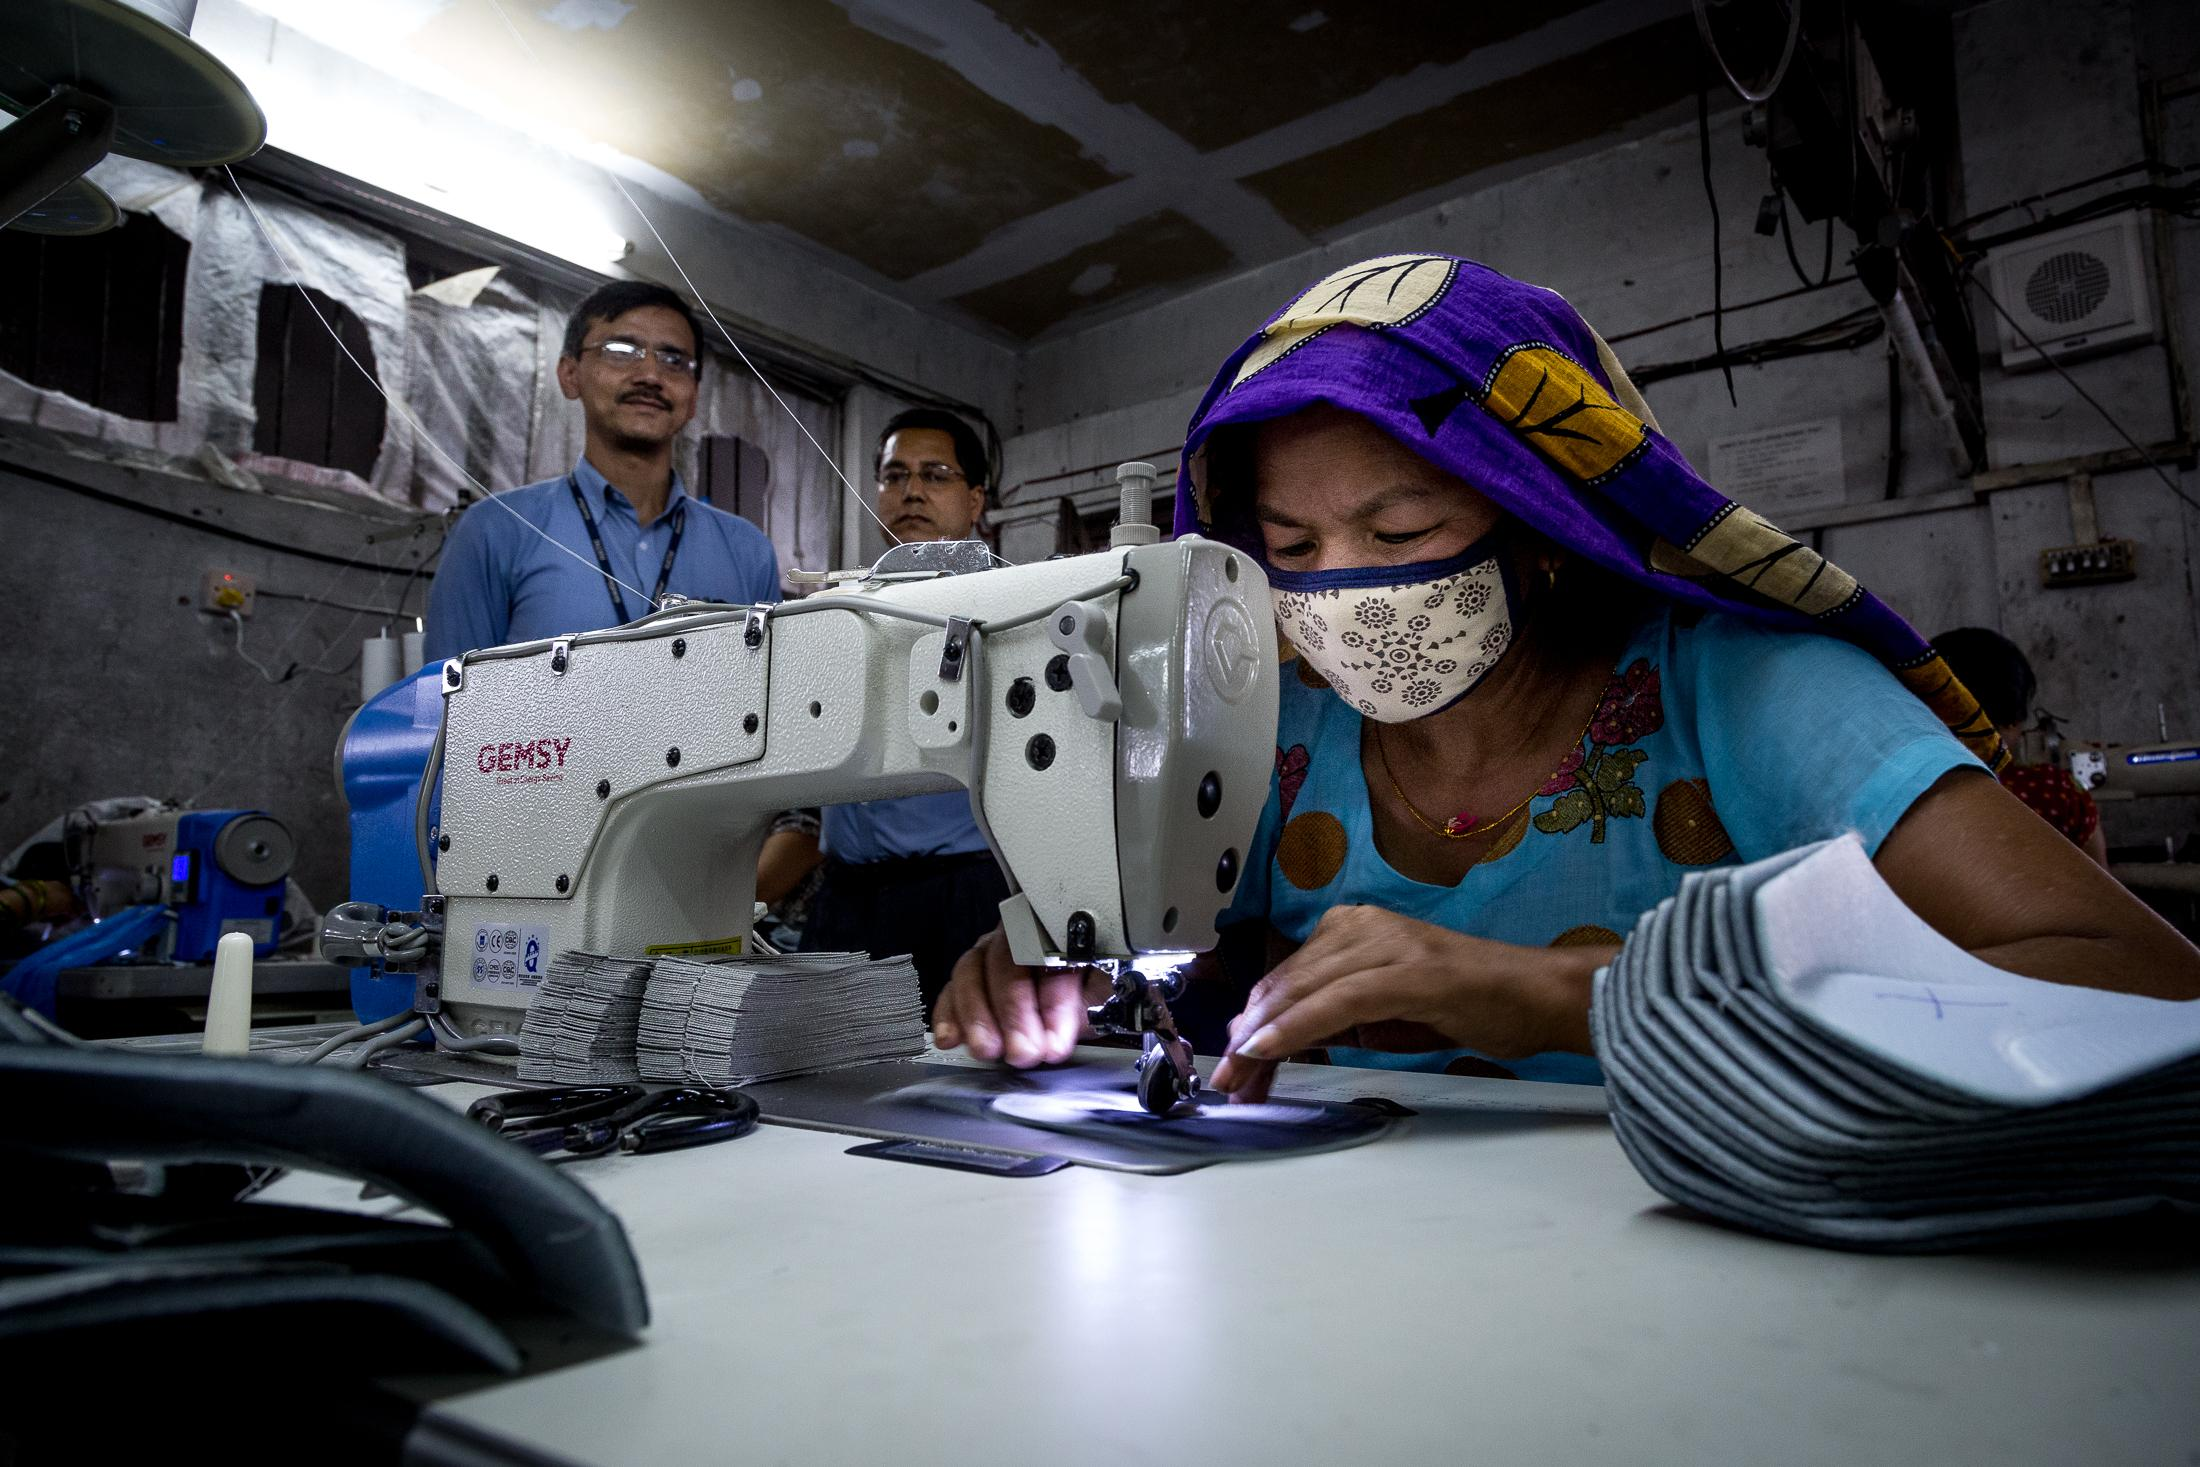 KATHMANDU, NEPAL - JULY 13, 2015: A woman sews shoes under the attention of her supervisors in a factory on July 13, 2015 in Kathmandu, Nepal. Photo: © Omar Havana for ILO